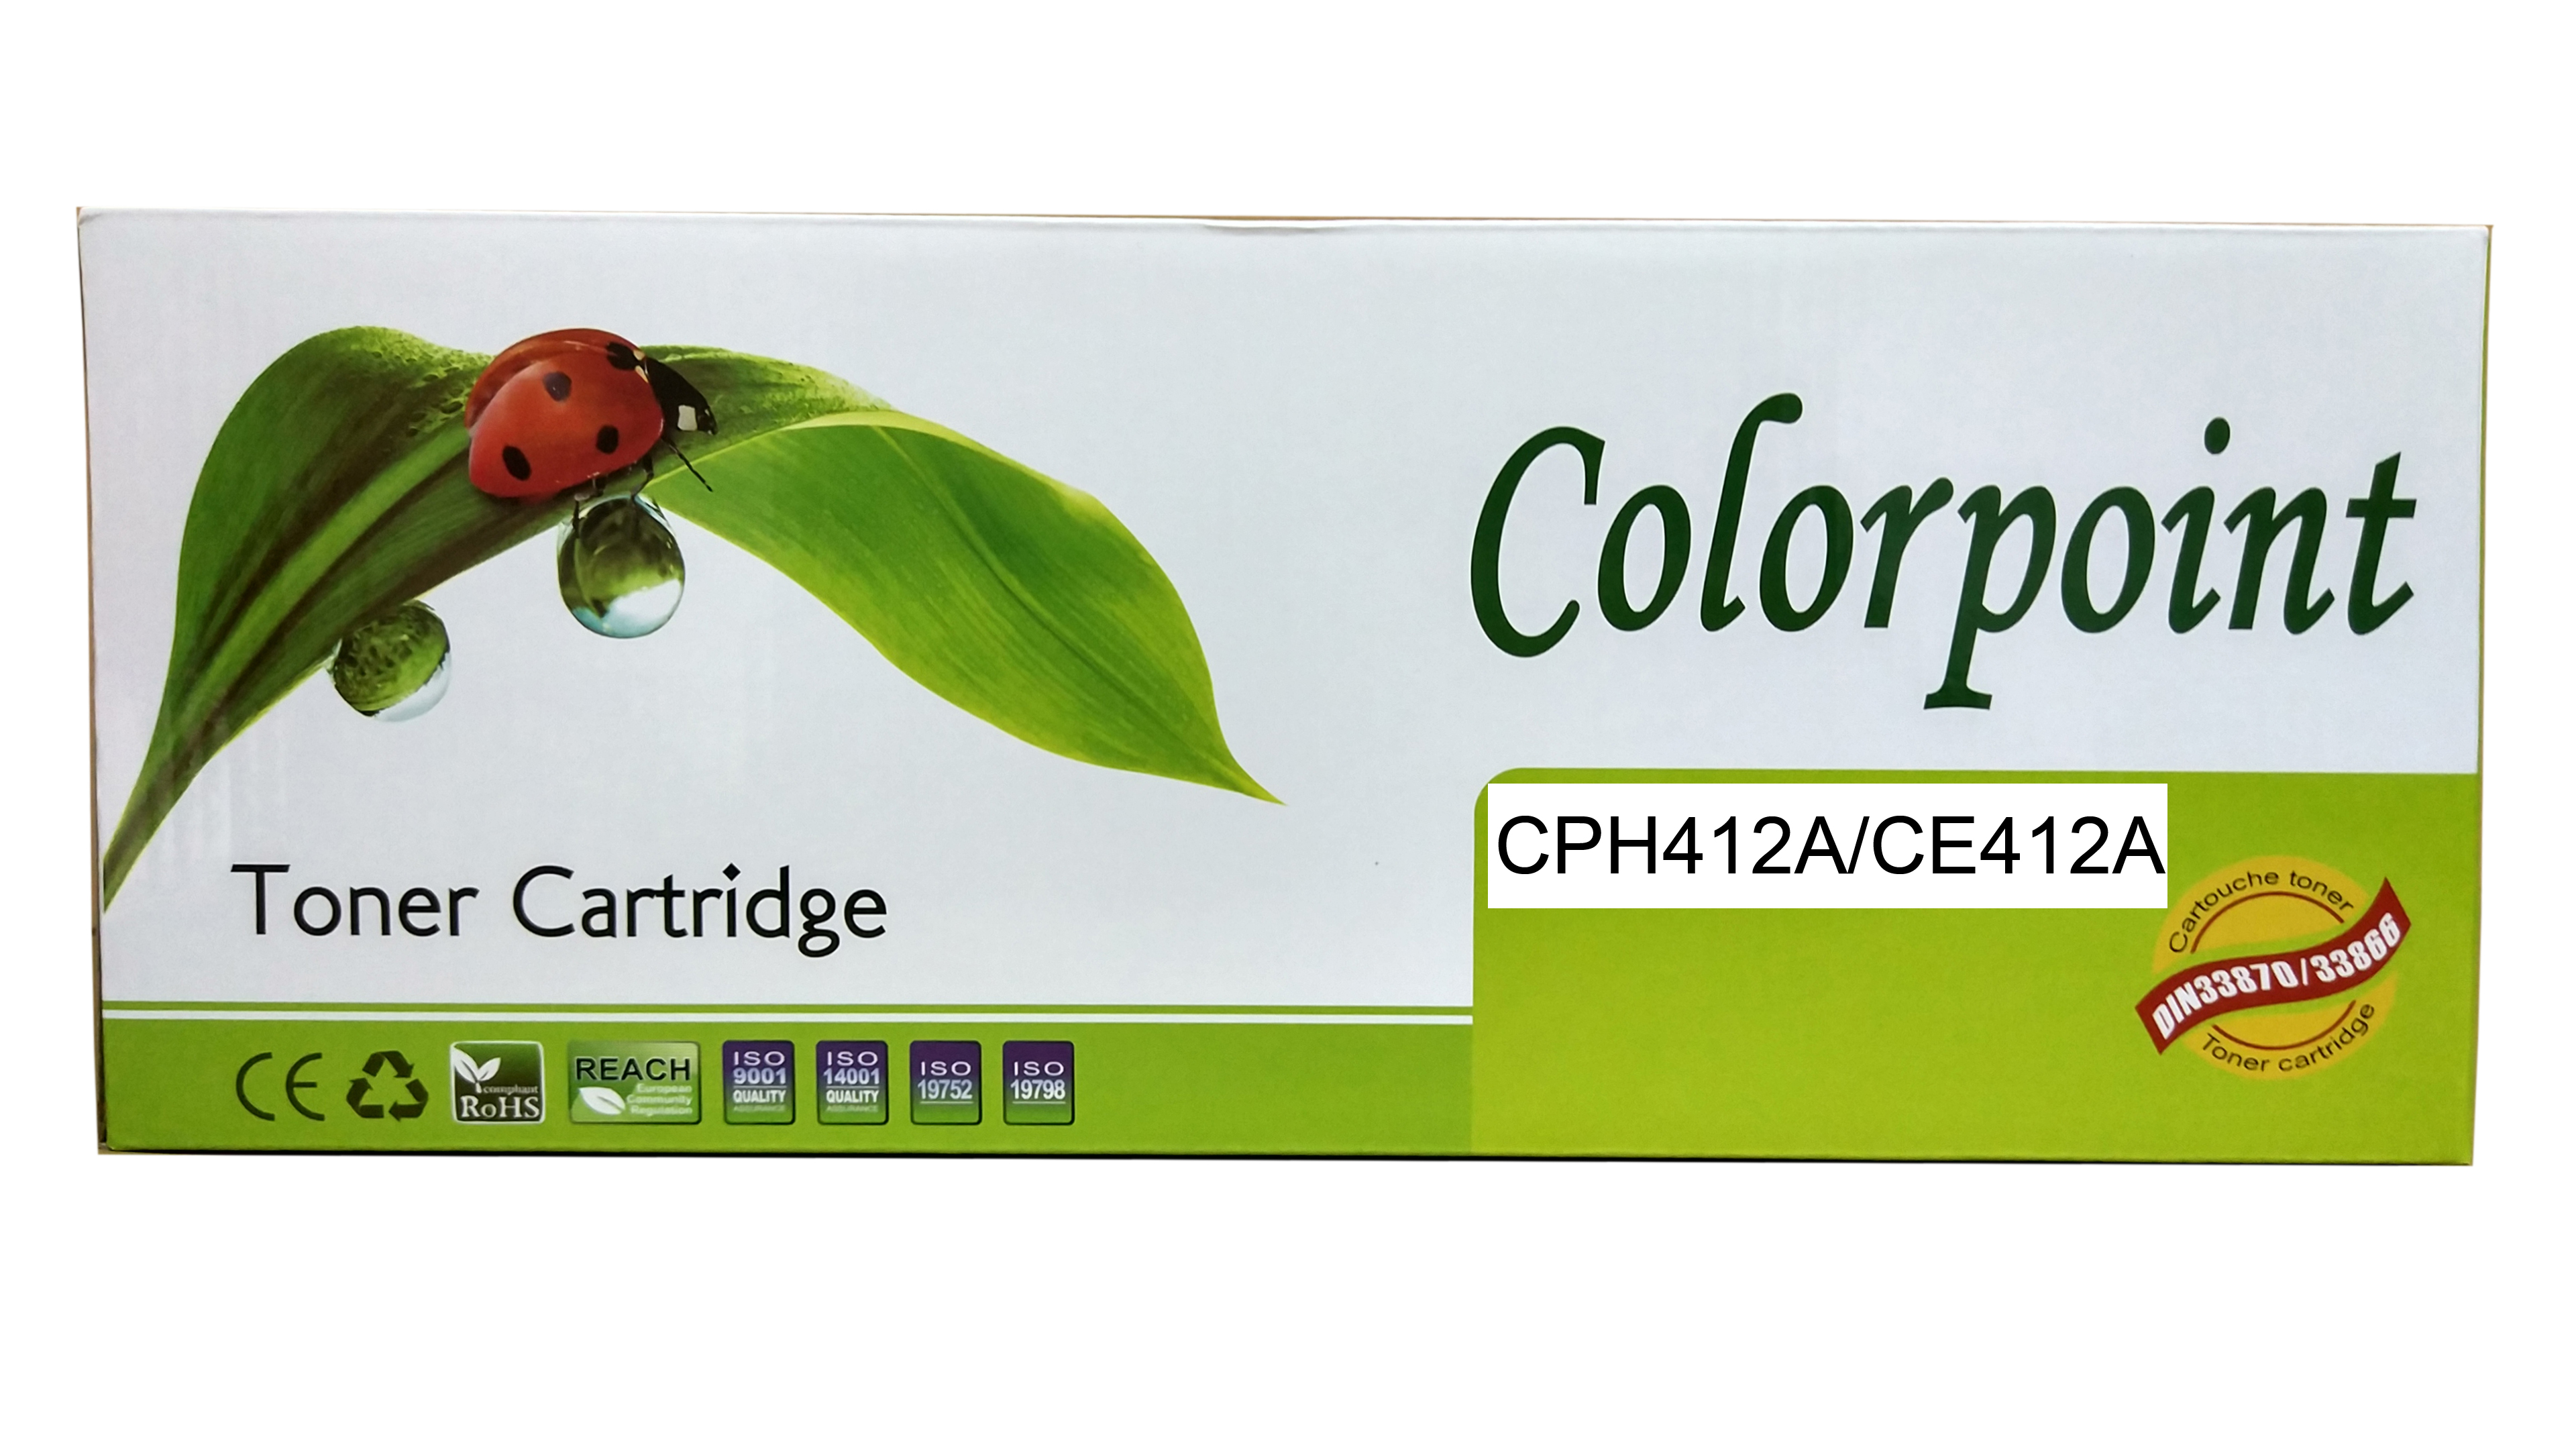 Картридж Colorpoint CPH412A CE412A